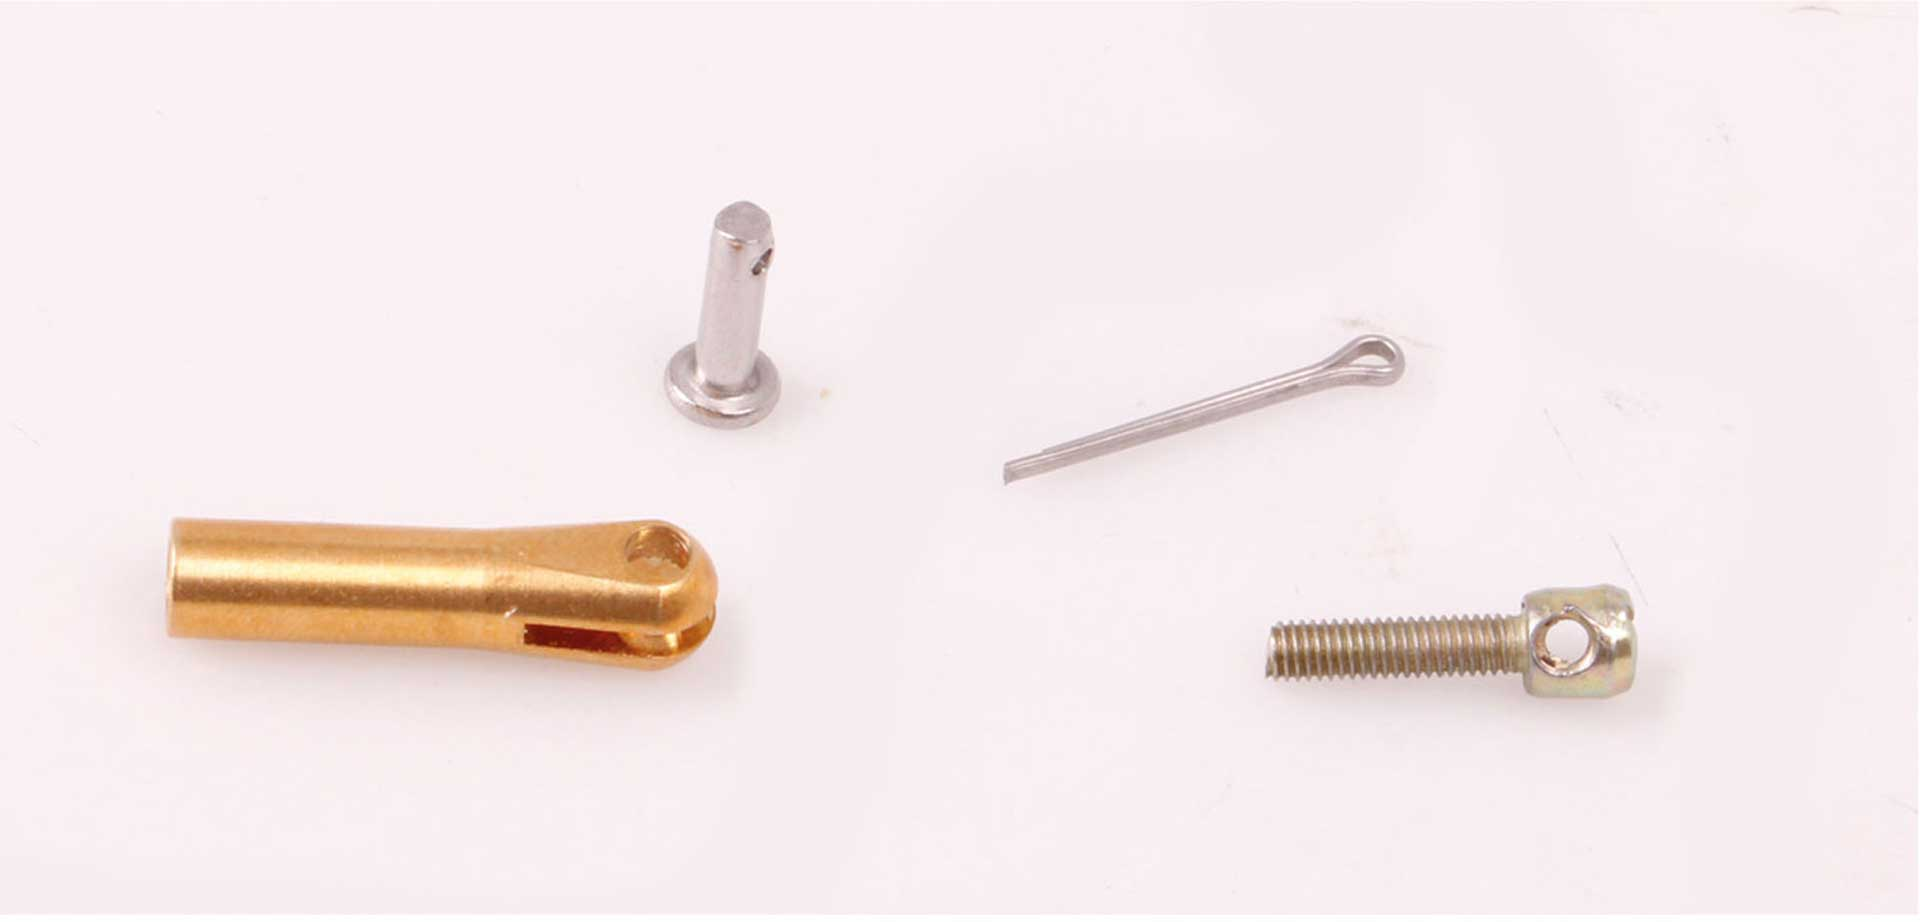 VALUEPLANES TENSION CABLE CONNECTION BRASS 10PCS. with bolt and safety pin